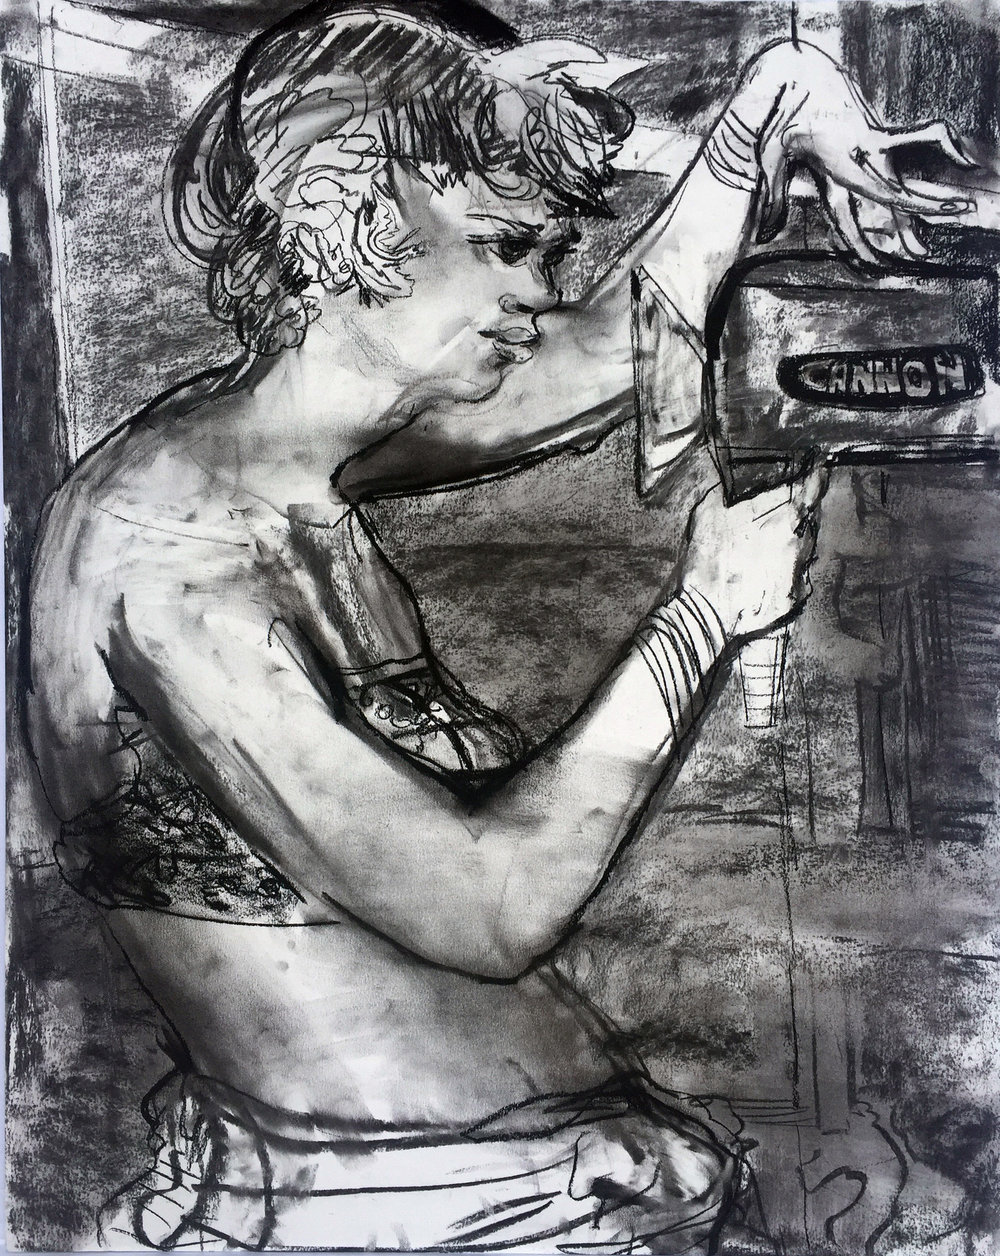 Camera Mom J Baker18 by 24 inches charcoal on paper 2017.jpg